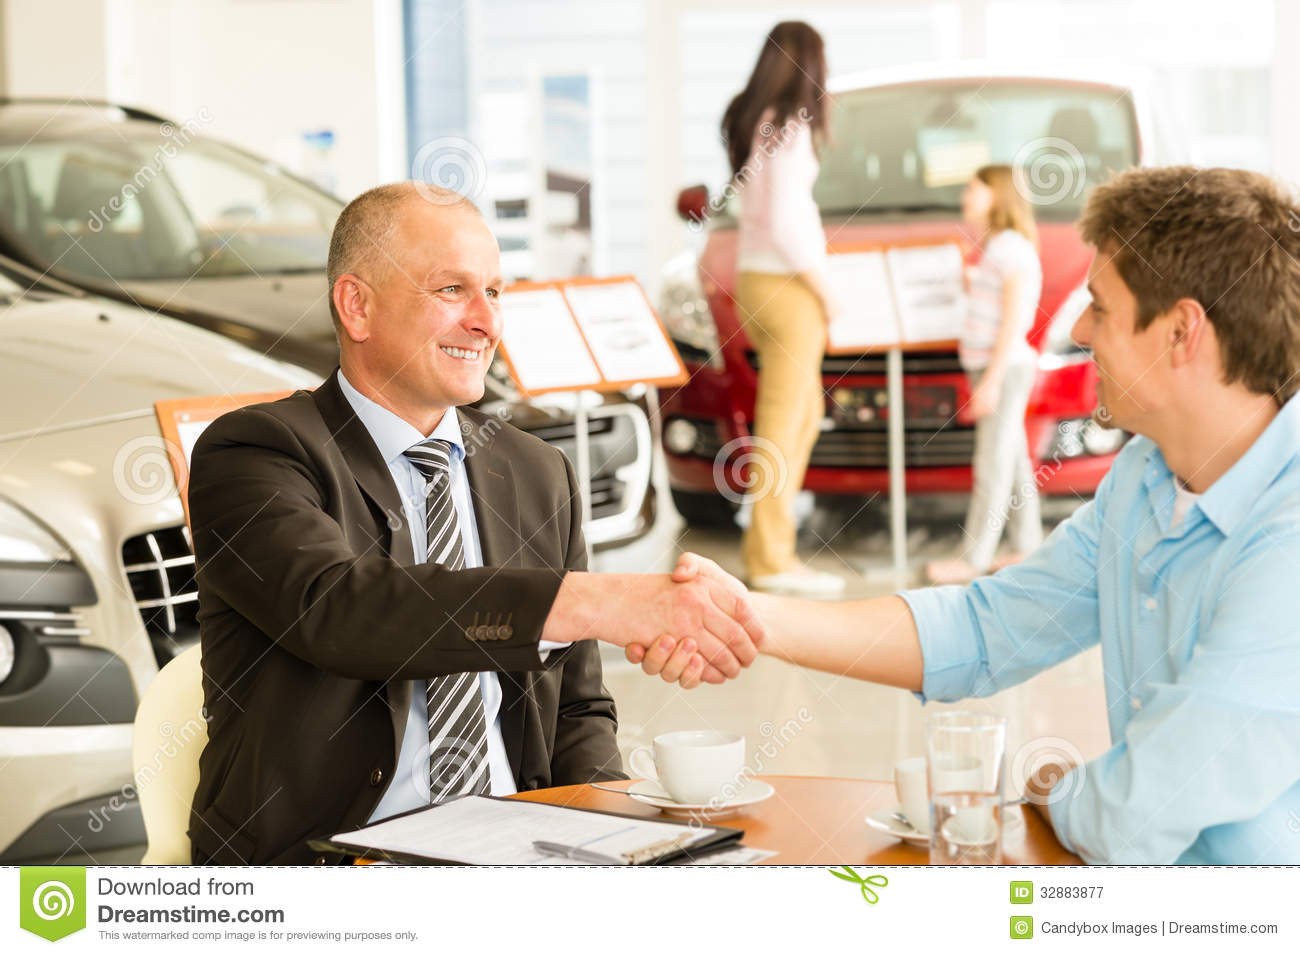 How To Refiance A Car Loan